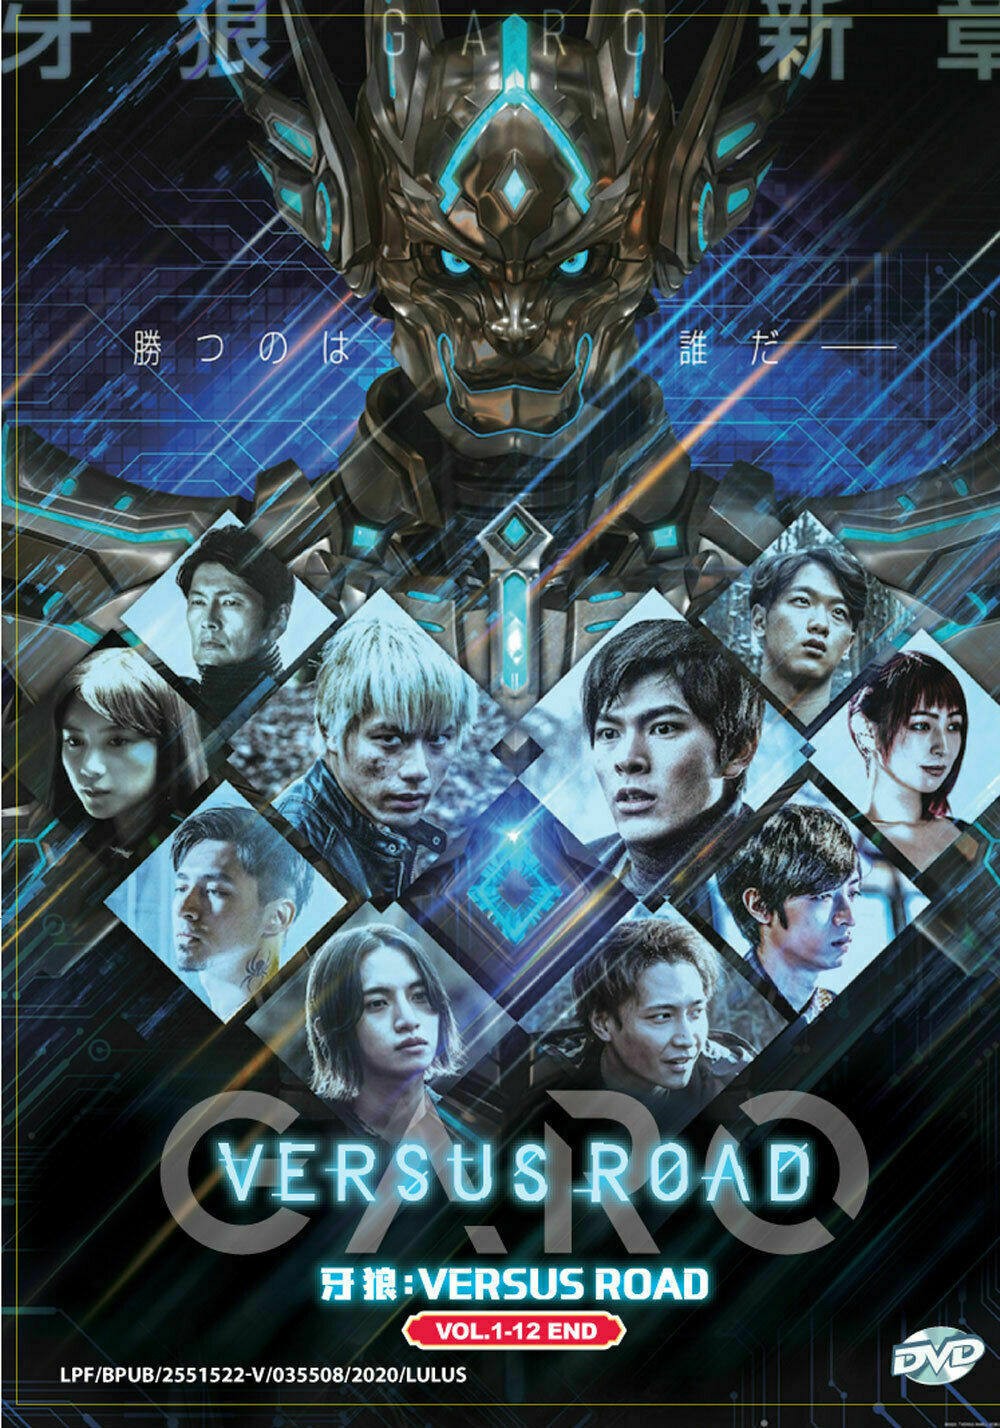 GARO: Versus Road DVD (Vol.1-12 end) with English Subtitle Ship out From USA